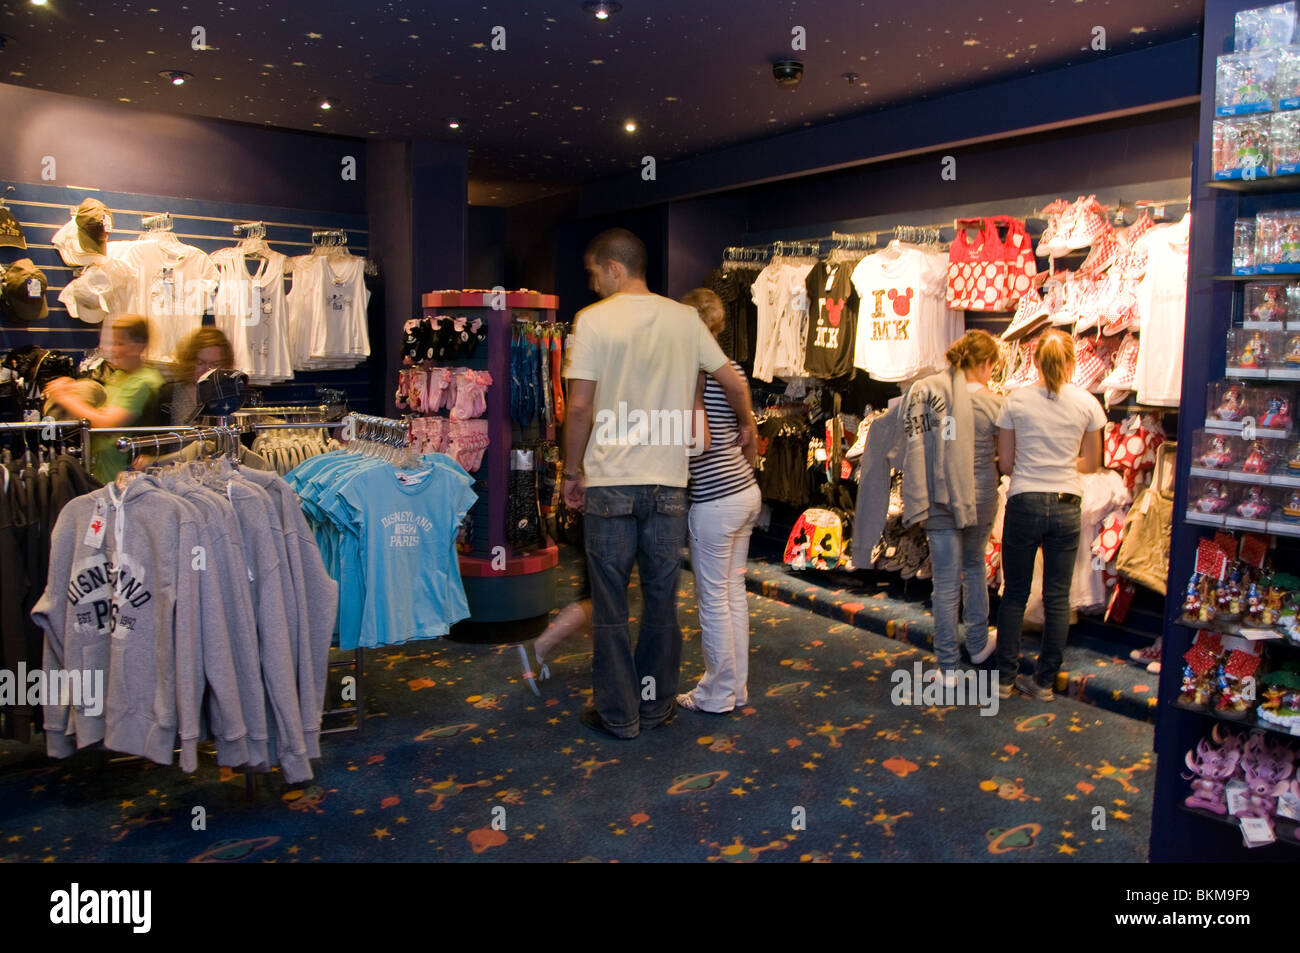 Paris clothing stores